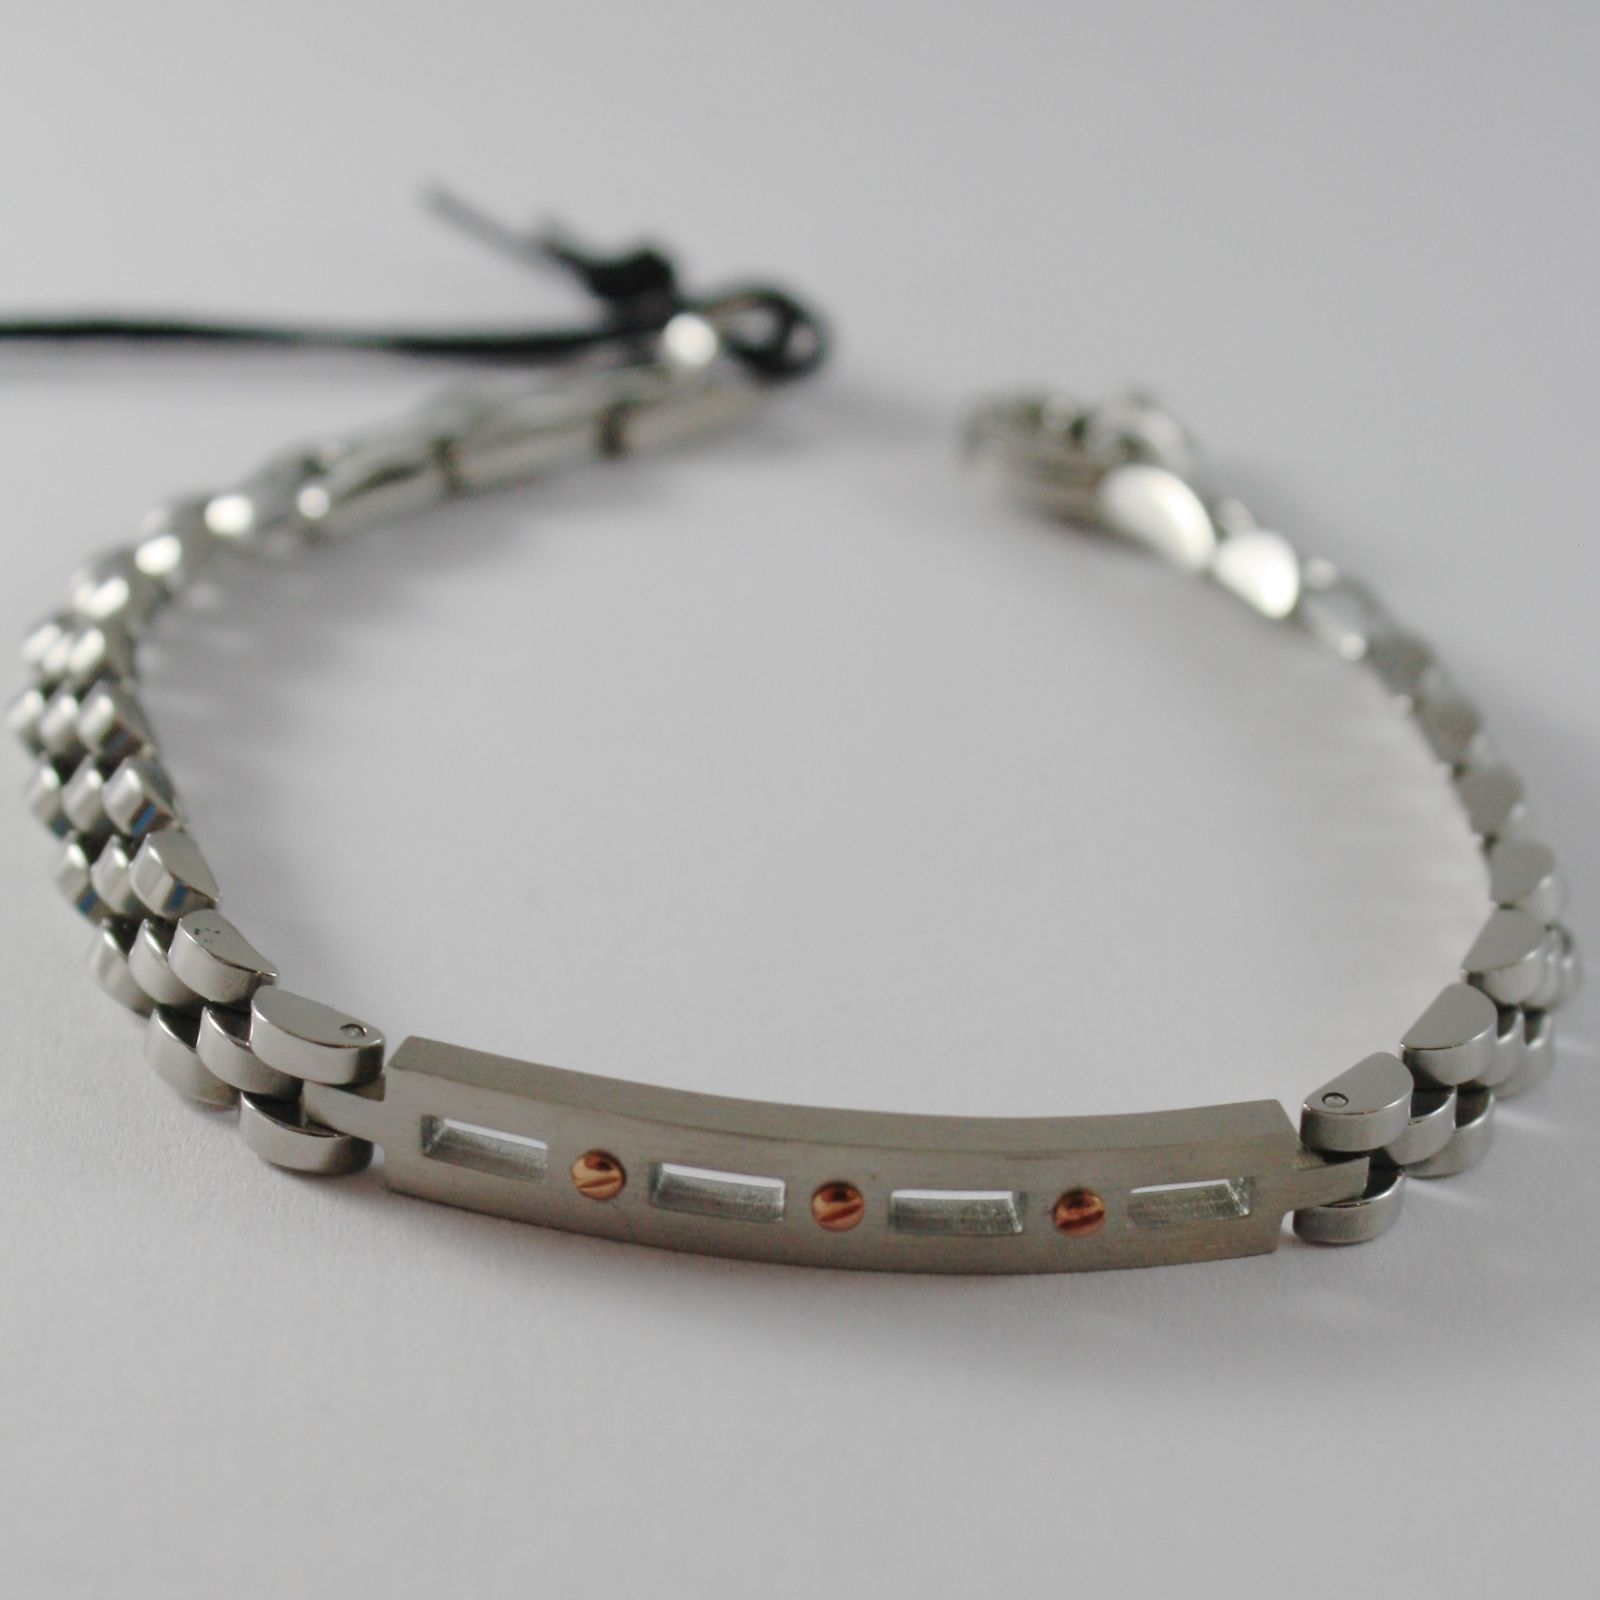 STAINLESS SATIN WHITE & ROSE STEEL ONDULATE BRACELET, 4US BY CESARE PACIOTTI